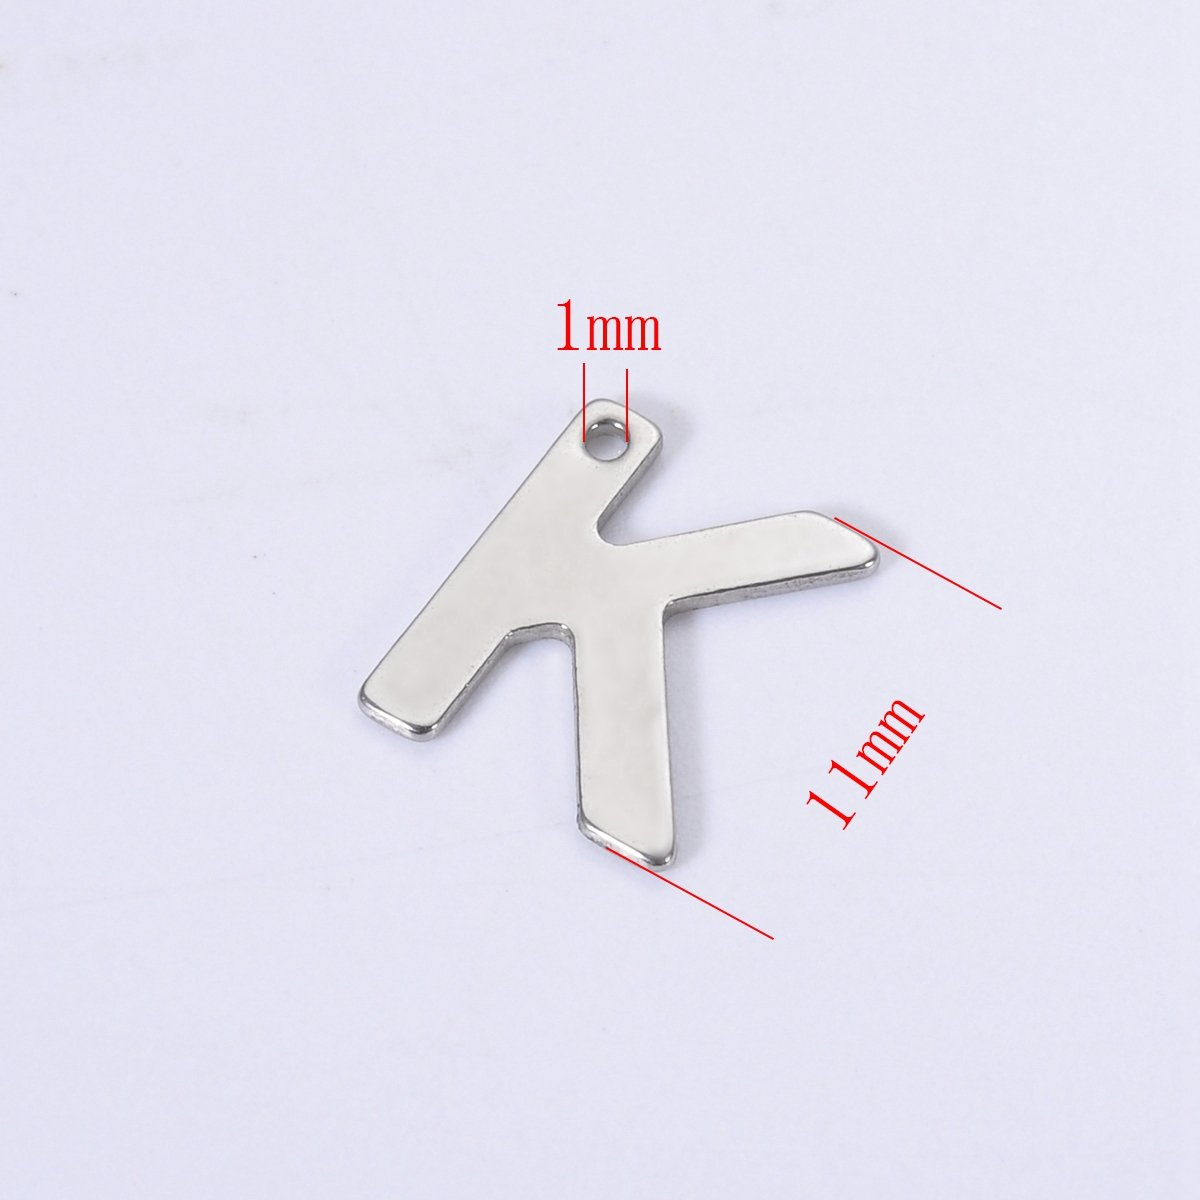 30PCS Stainless Steel Smooth Letter AlphabetA Charm Pendant for Jewelry Making Findings 11mmx10mm